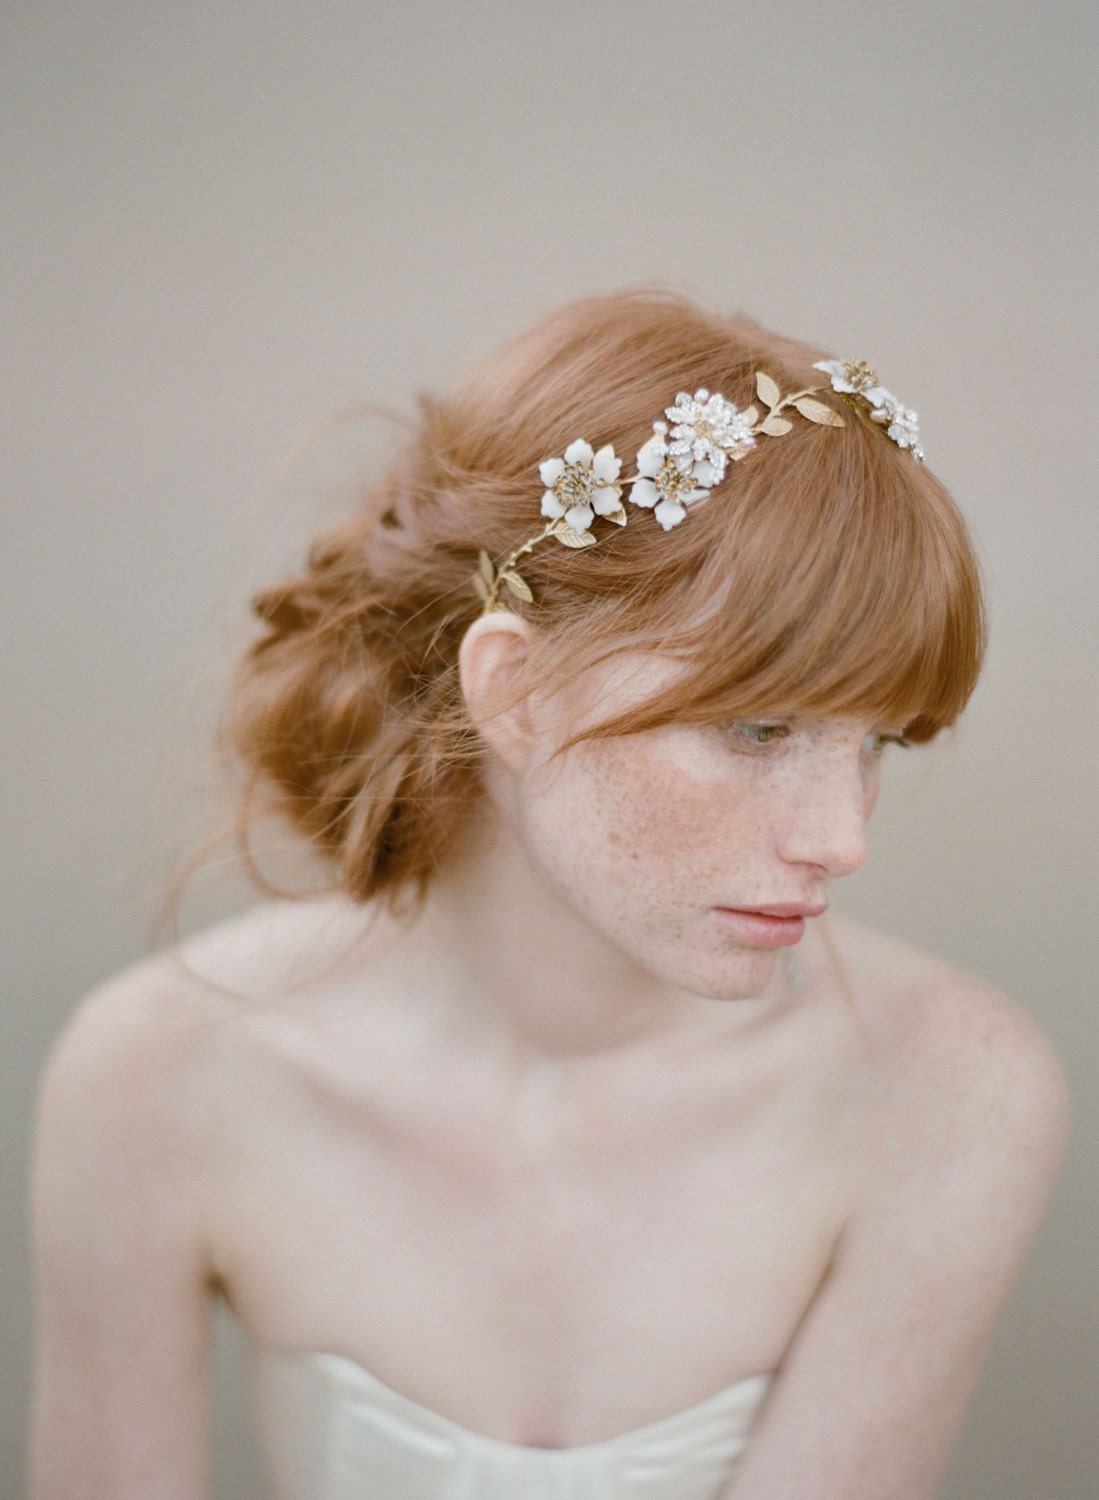 Br Bridal Headpieces Twigs And Honey - Bridal hair vine beaded flowers headpiece pearl and crystal blossom twig headpiece